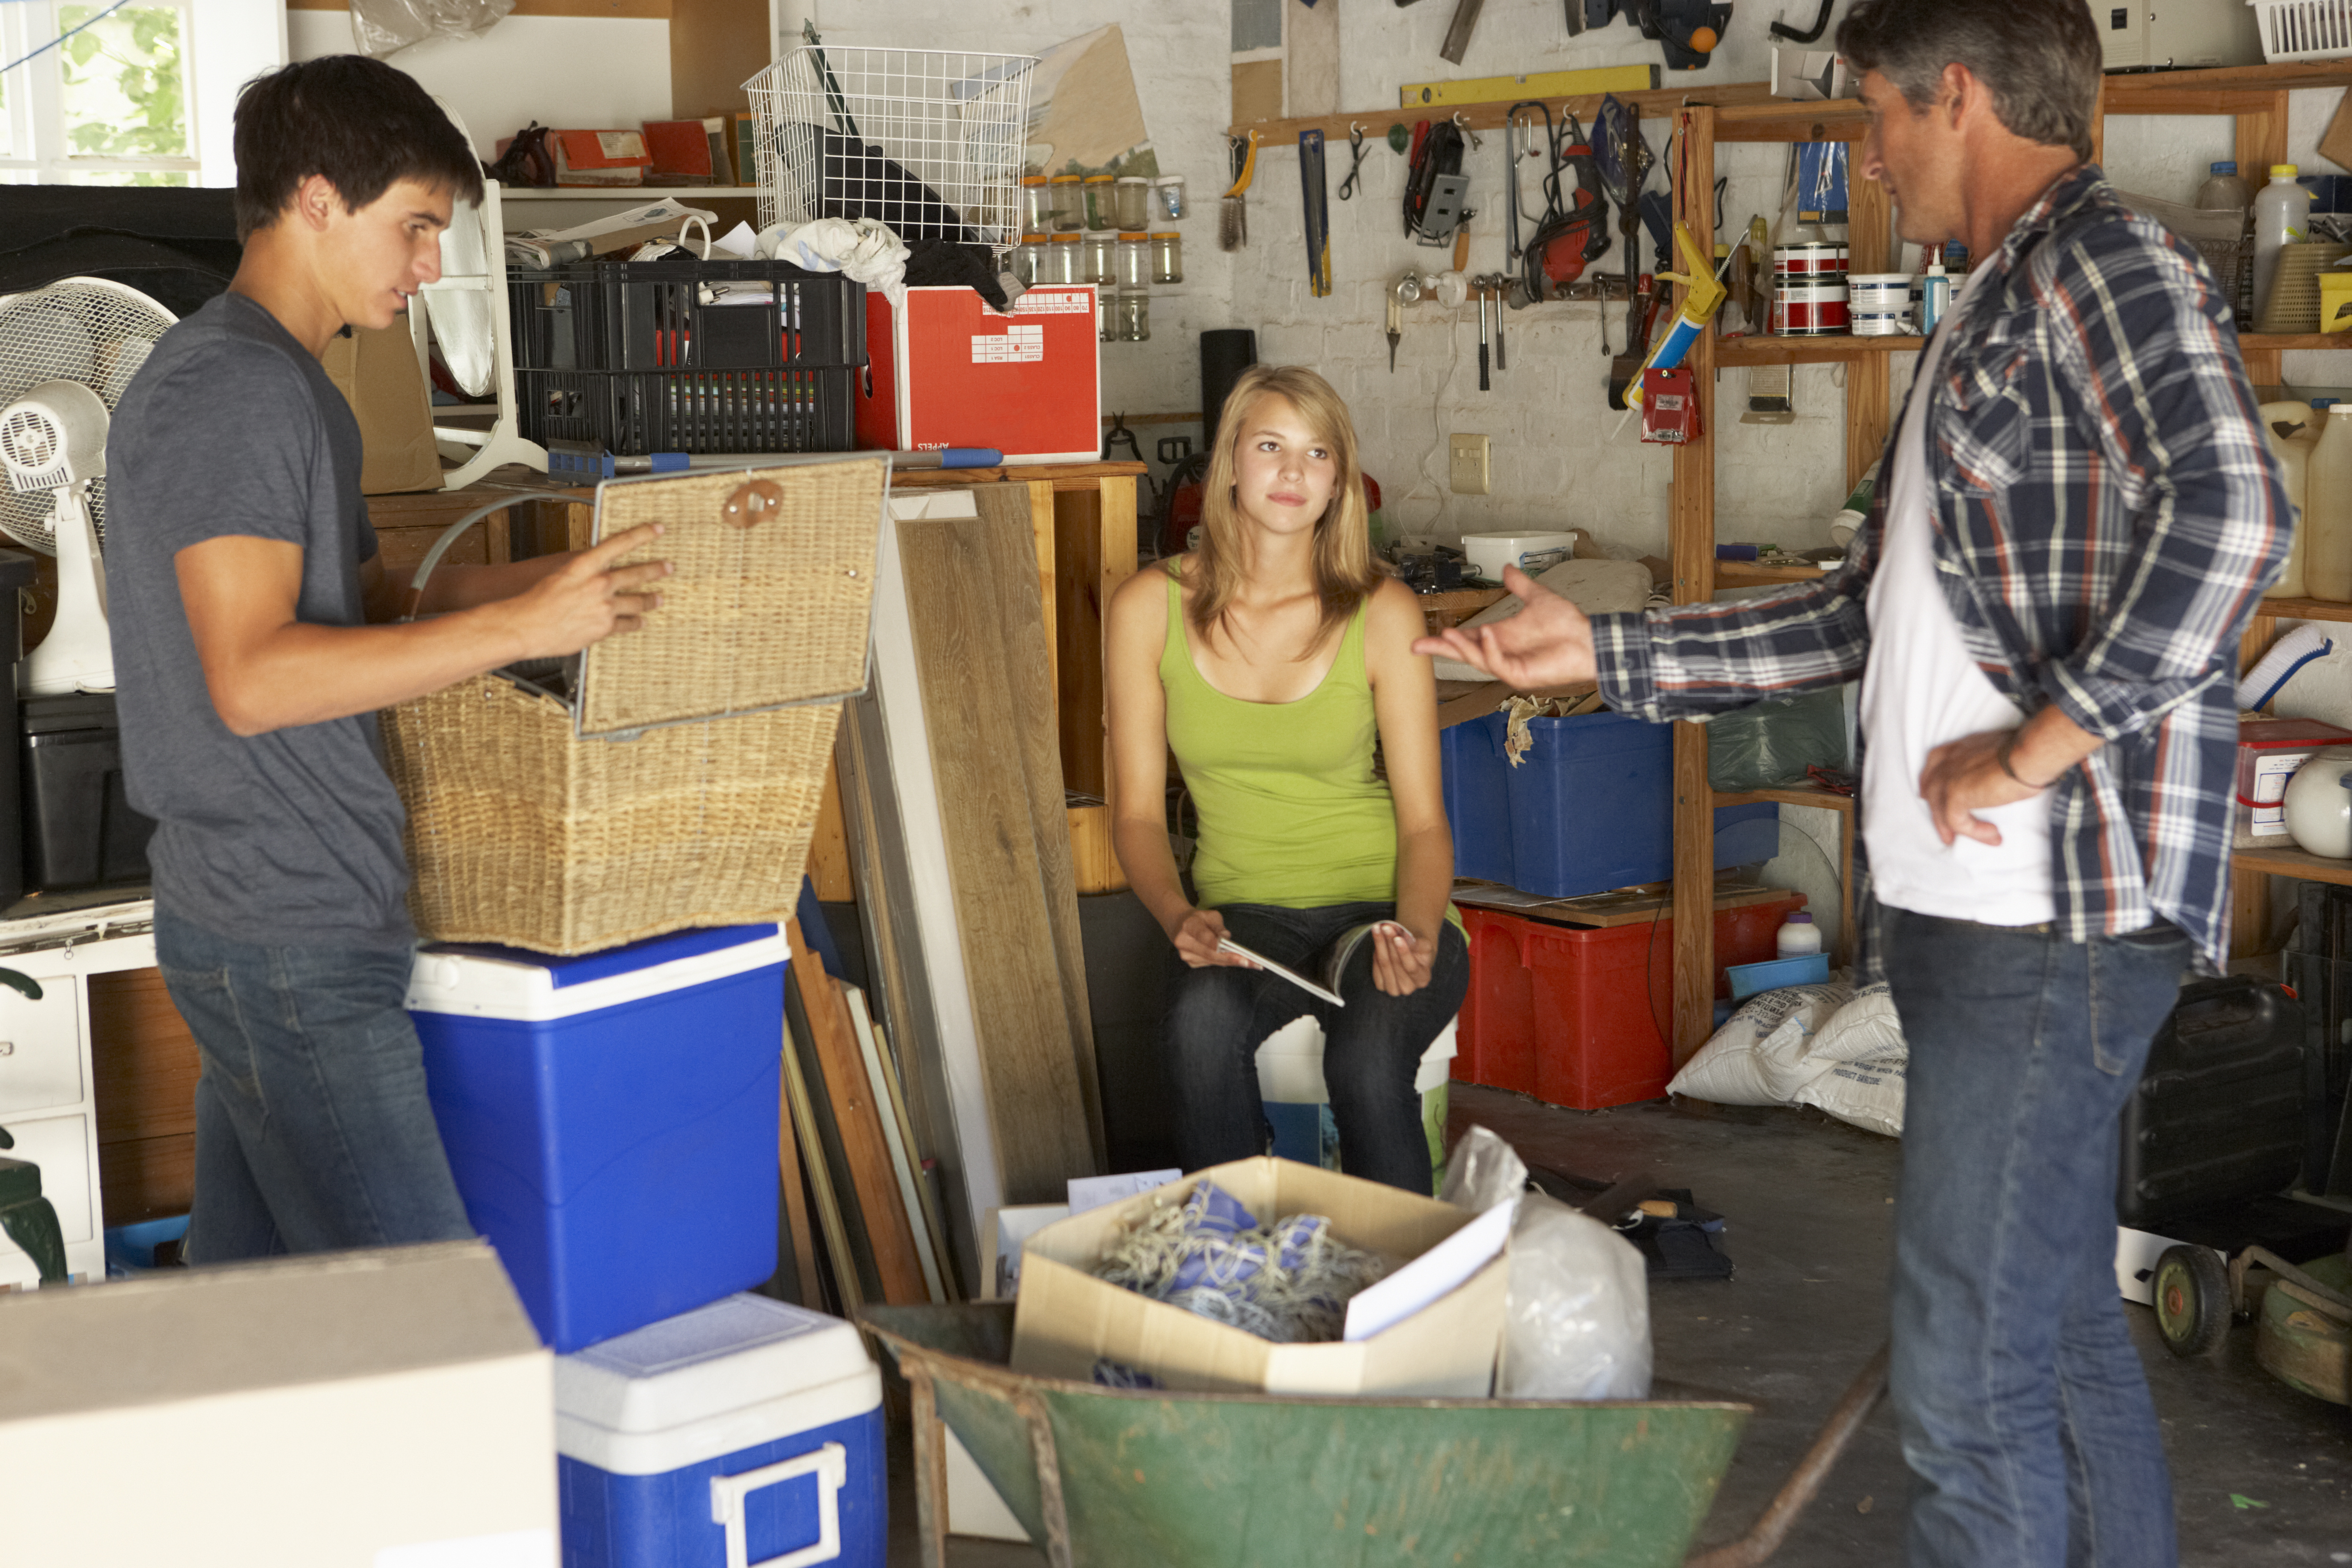 Father Organising Two Teenagers Clearing Garage For Yard Sale